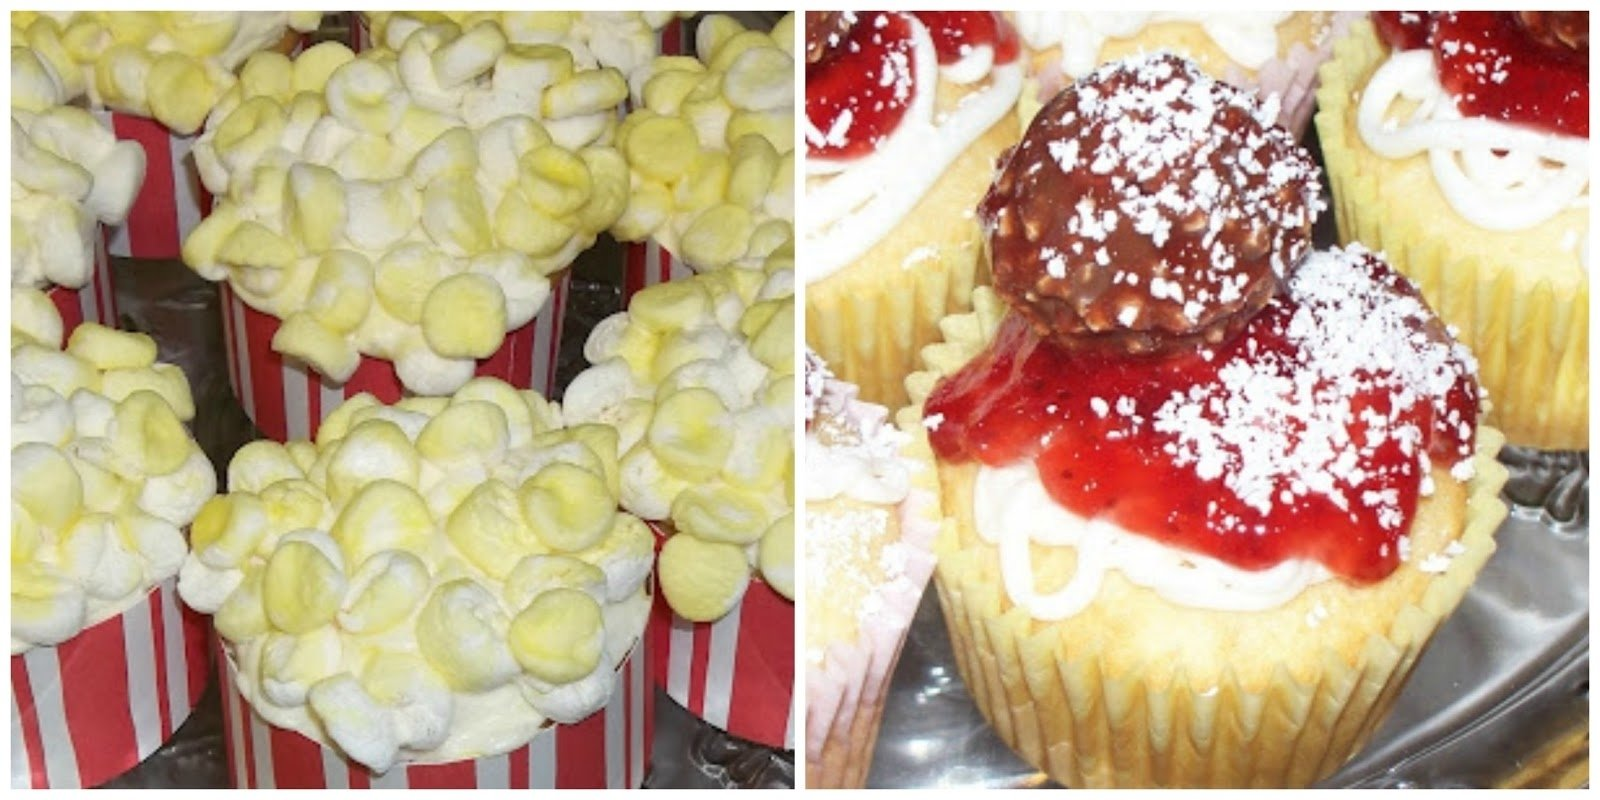 10 Attractive April Fools Day Party Ideas pams party practical tips april fools cupcakes feature of the day 2020